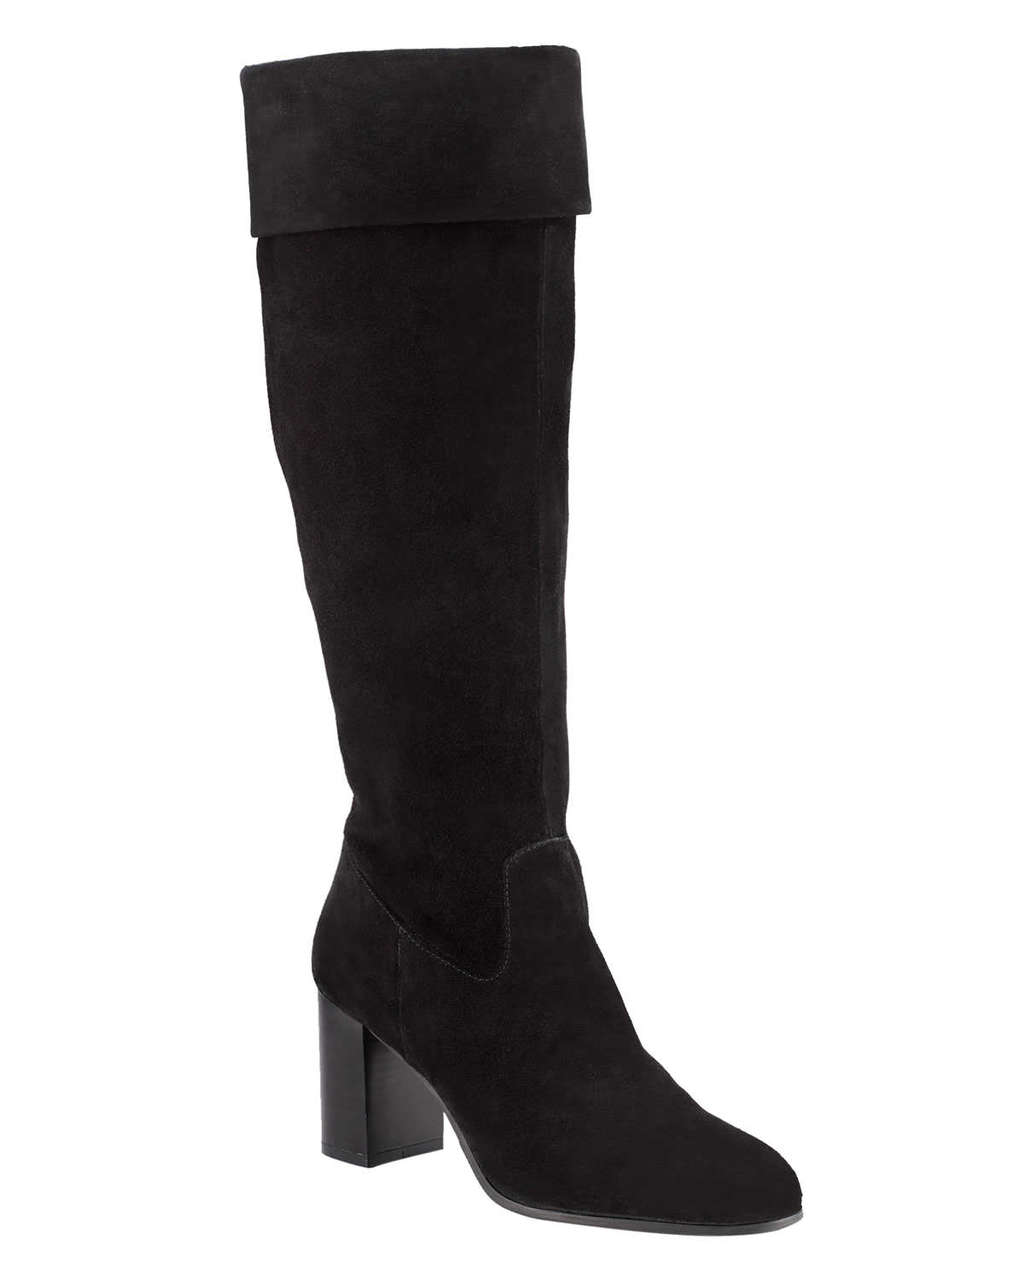 Natalia Knee High Boots - predominant colour: black; occasions: casual; material: suede; heel height: high; heel: block; toe: round toe; boot length: knee; style: standard; finish: plain; pattern: plain; wardrobe: investment; season: a/w 2016